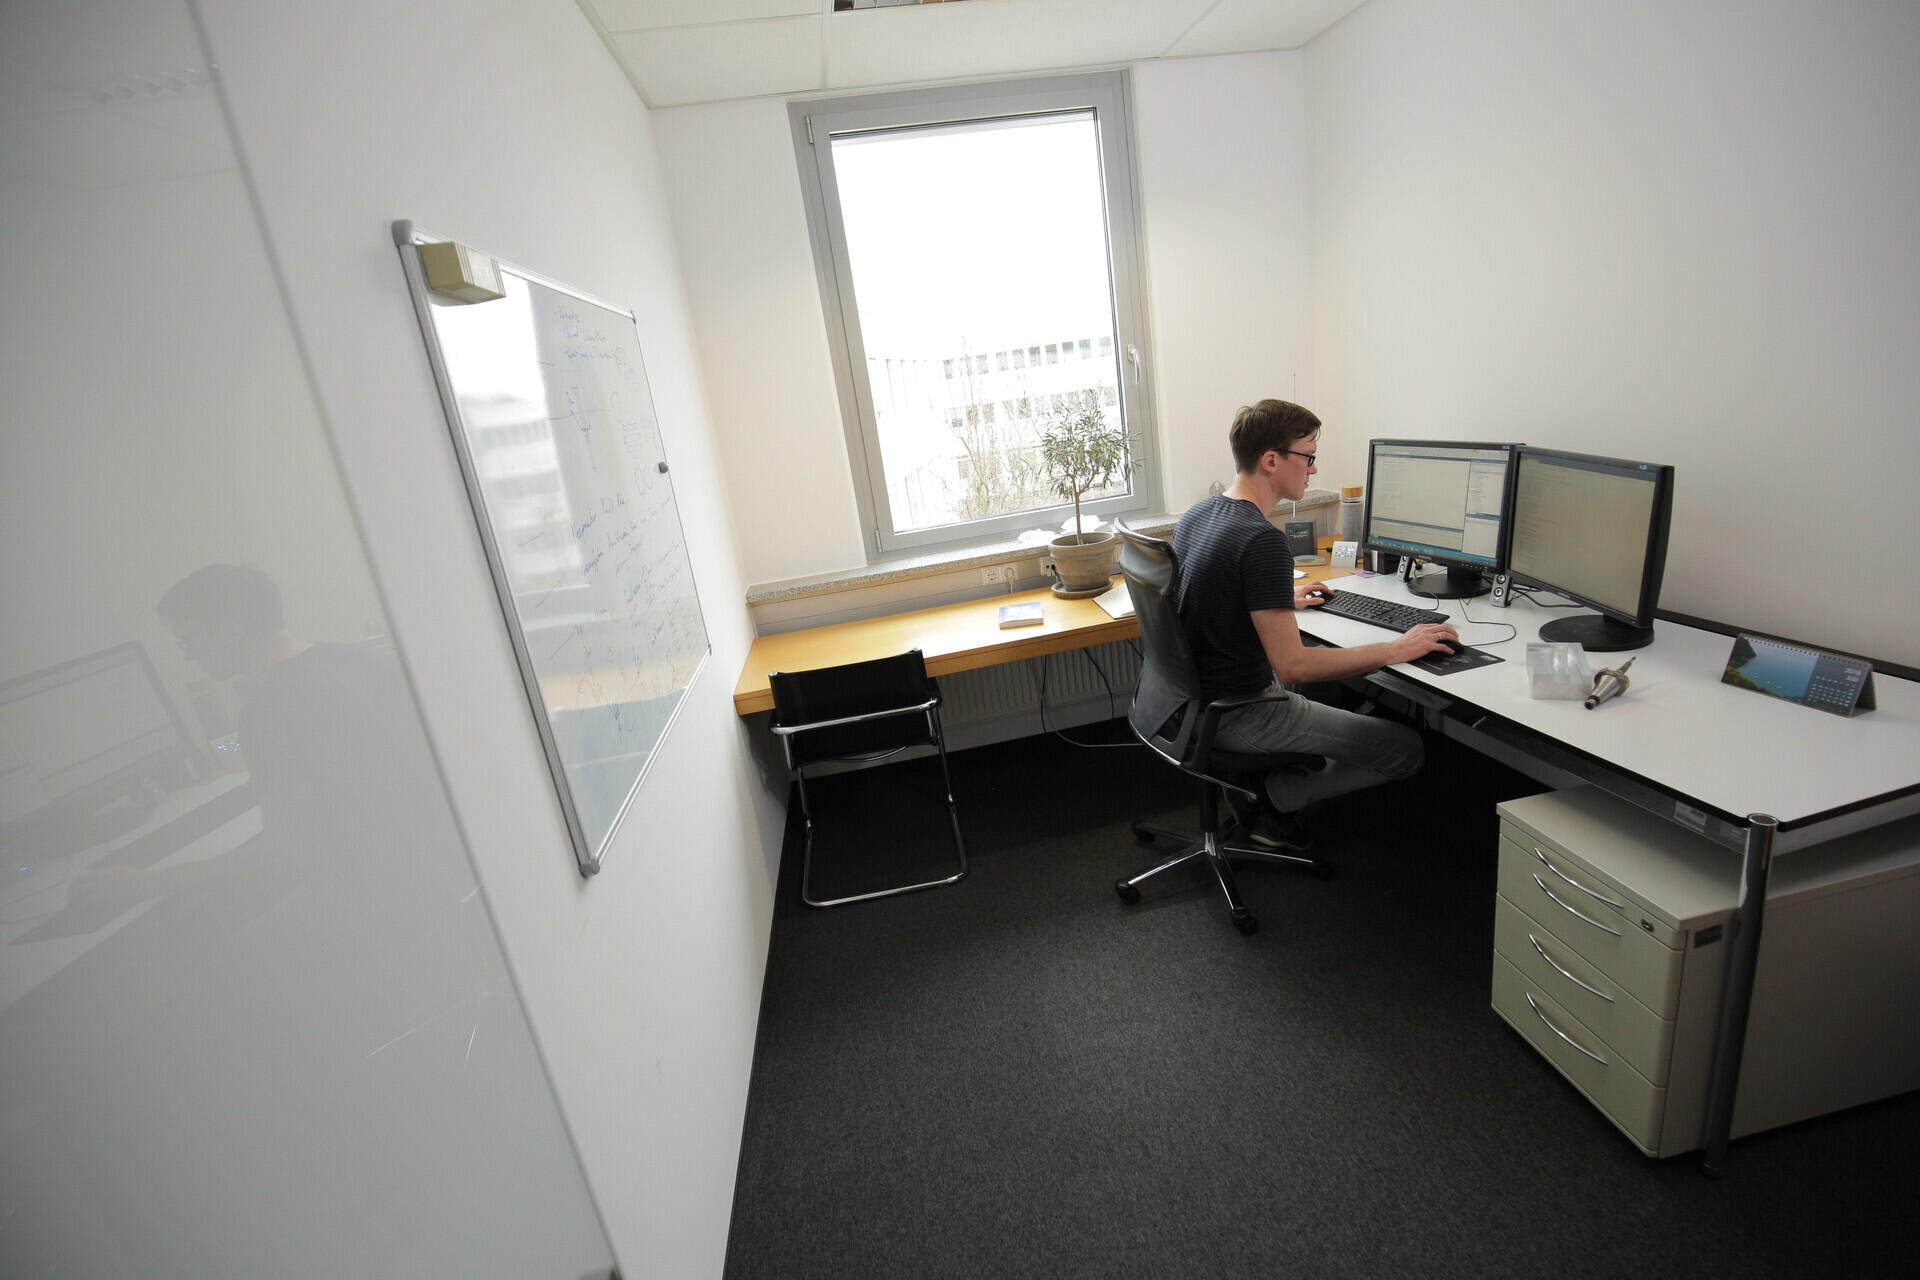 Software developer in a private office